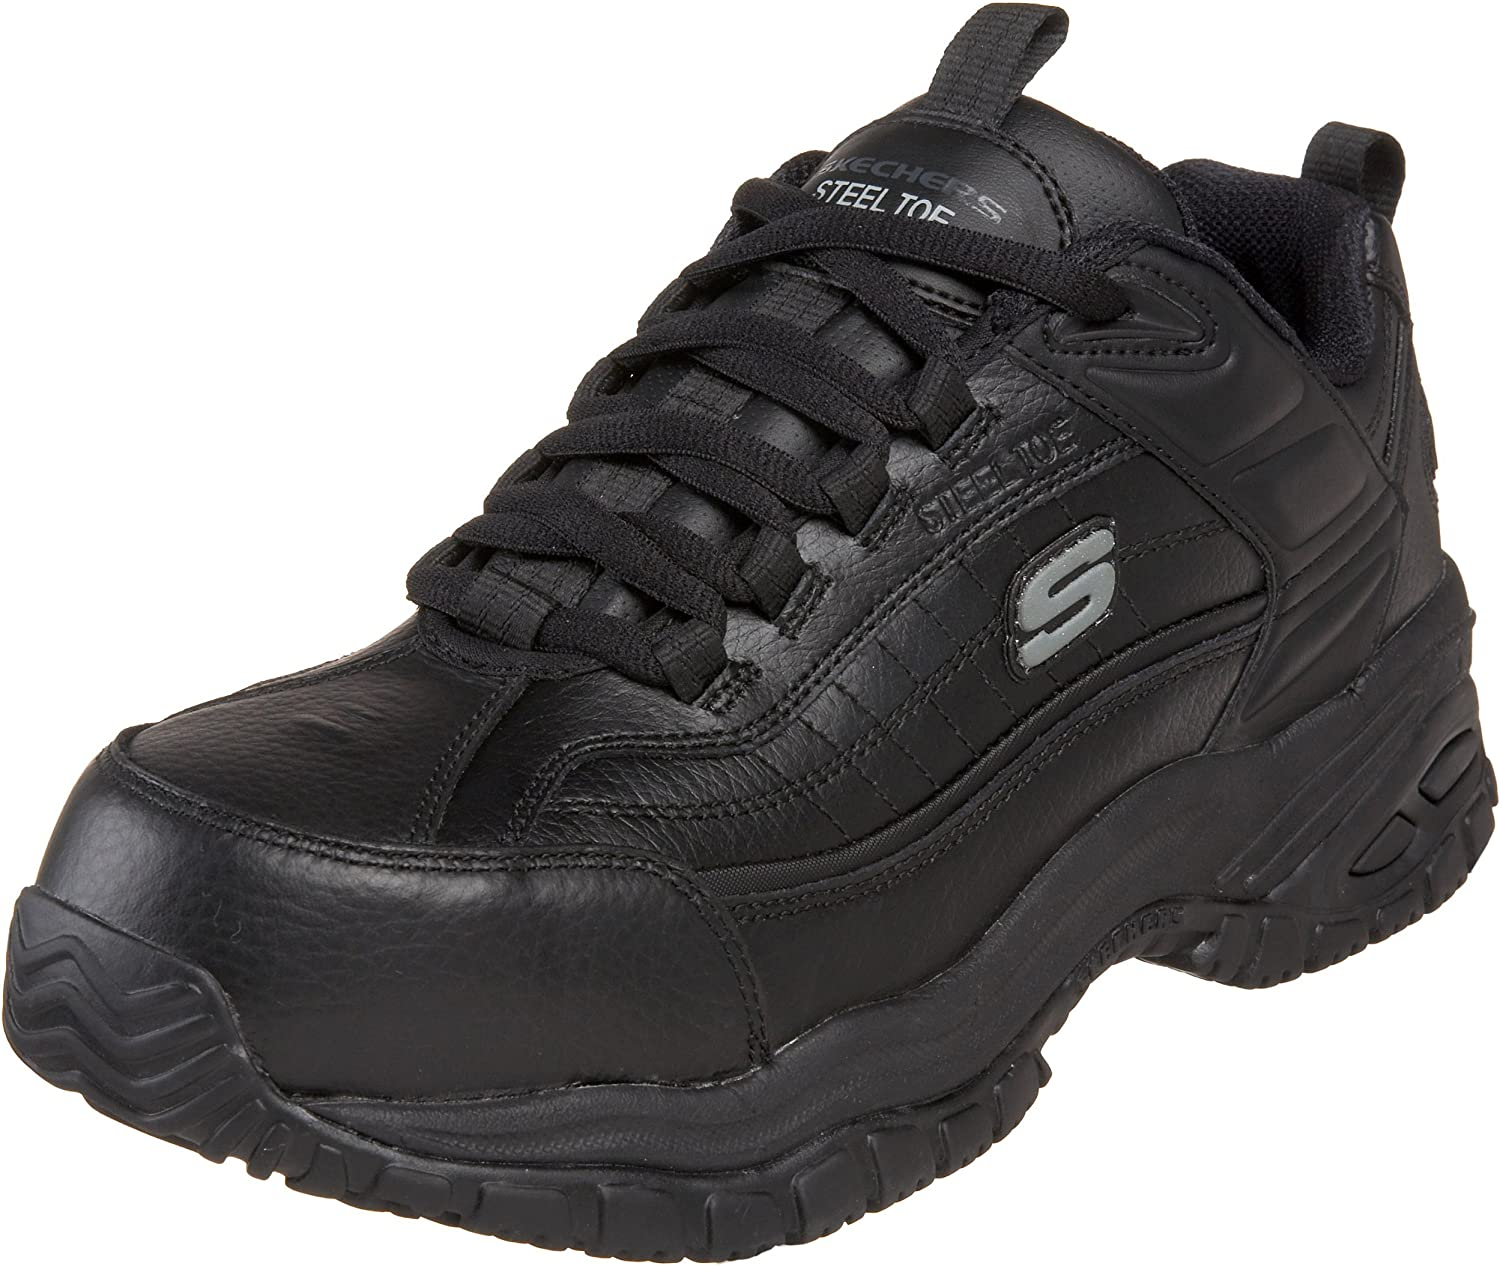 bf2a5878143 Steel Stride Soft Work for Skechers Toe Men's shoes Work ...